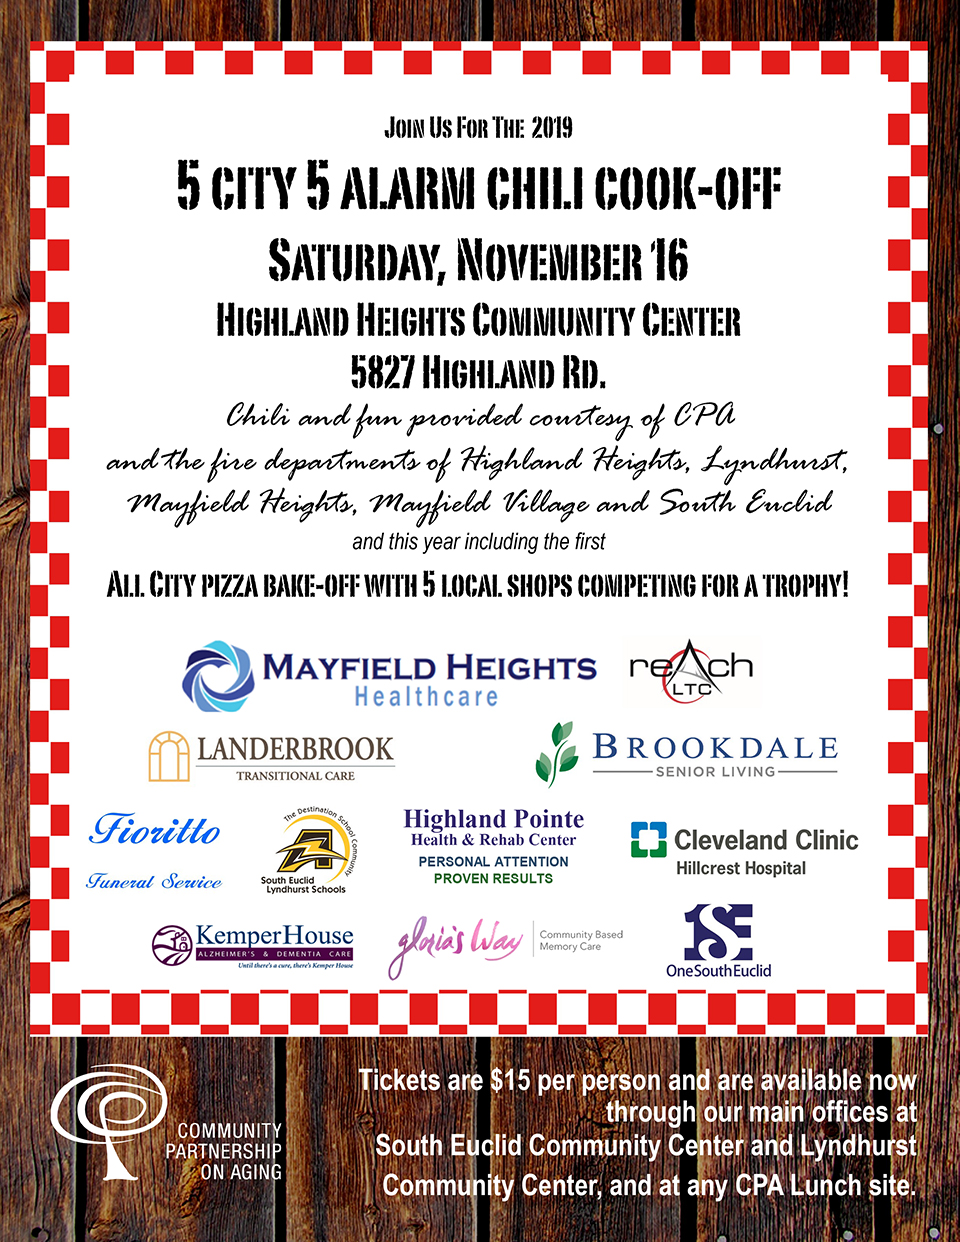 2019 5 City 5 Alarm Chili Cook Off Flier